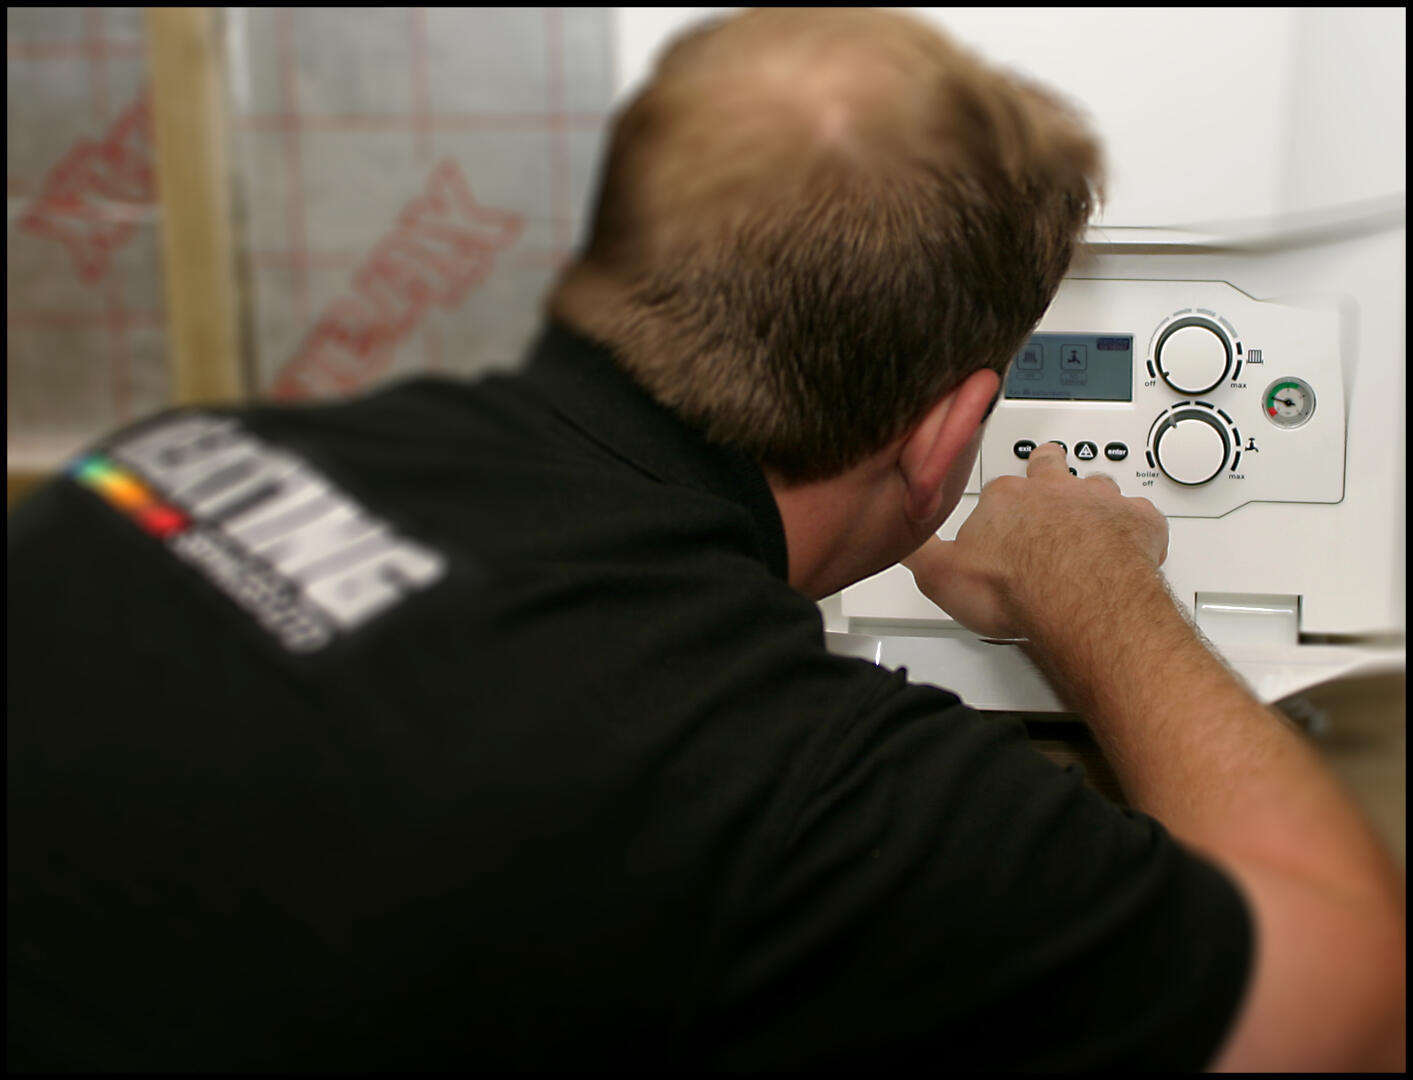 Plumbers Boiler Installation Service and Repairs and Bathroom Design and Installation by Heating Services Ltd in Beckenham (4)